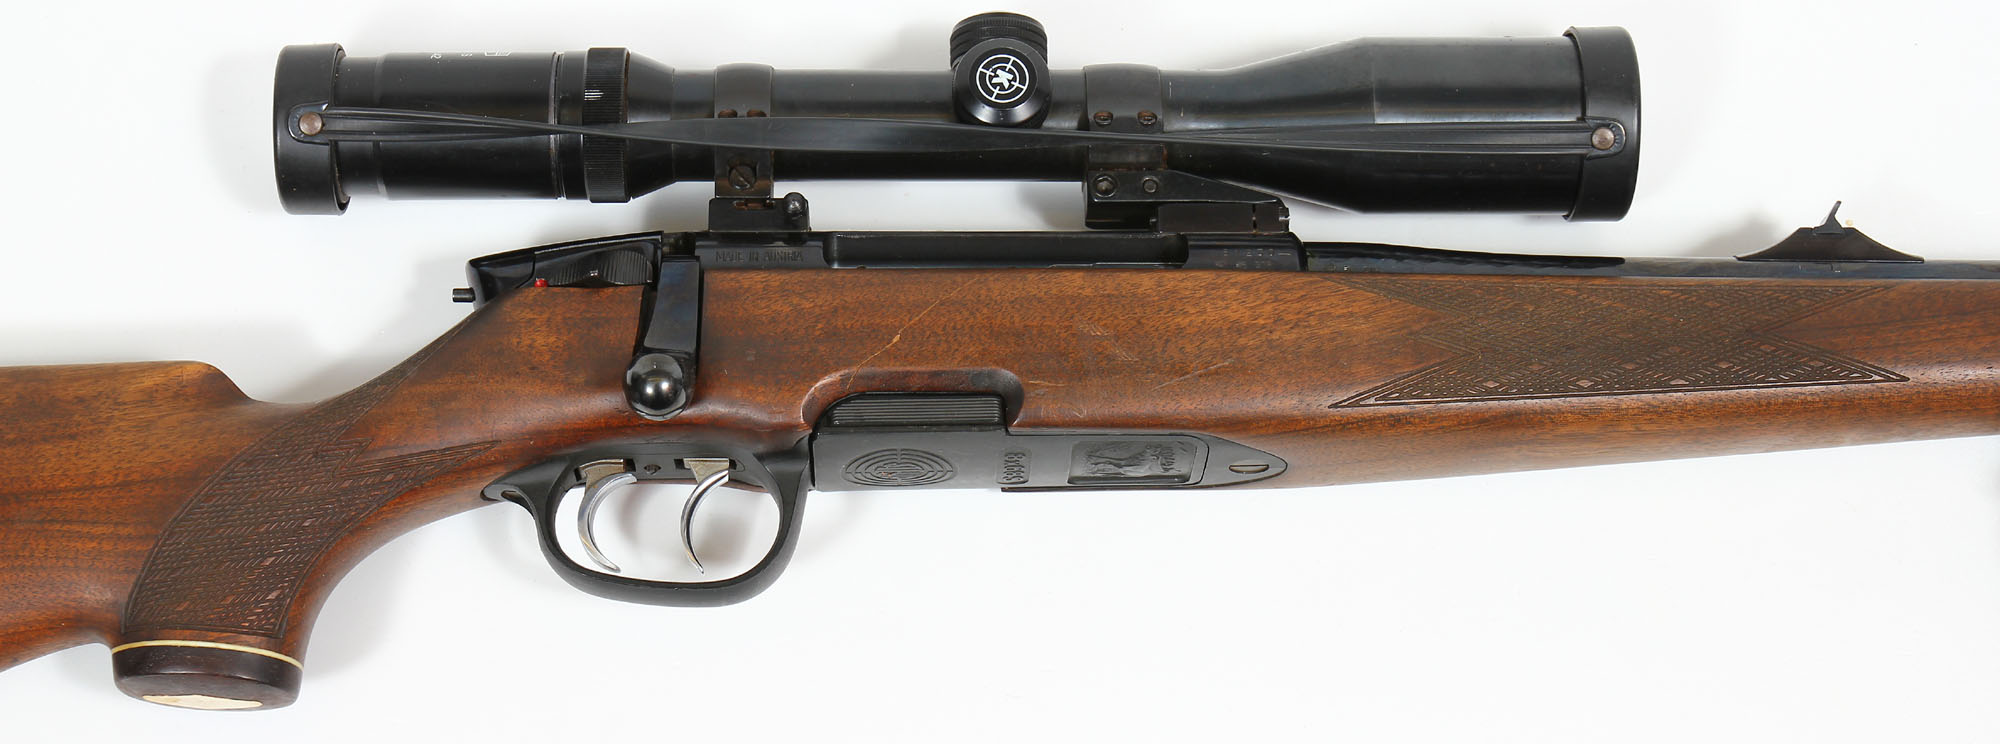 The Steyr-Mannlicher that appeared in 1973 as the replacement for the classic Mannlicher-Schönauer had a plastic magazine and plastic trigger guard assembly. (Picture courtesy waffen-faude.de)